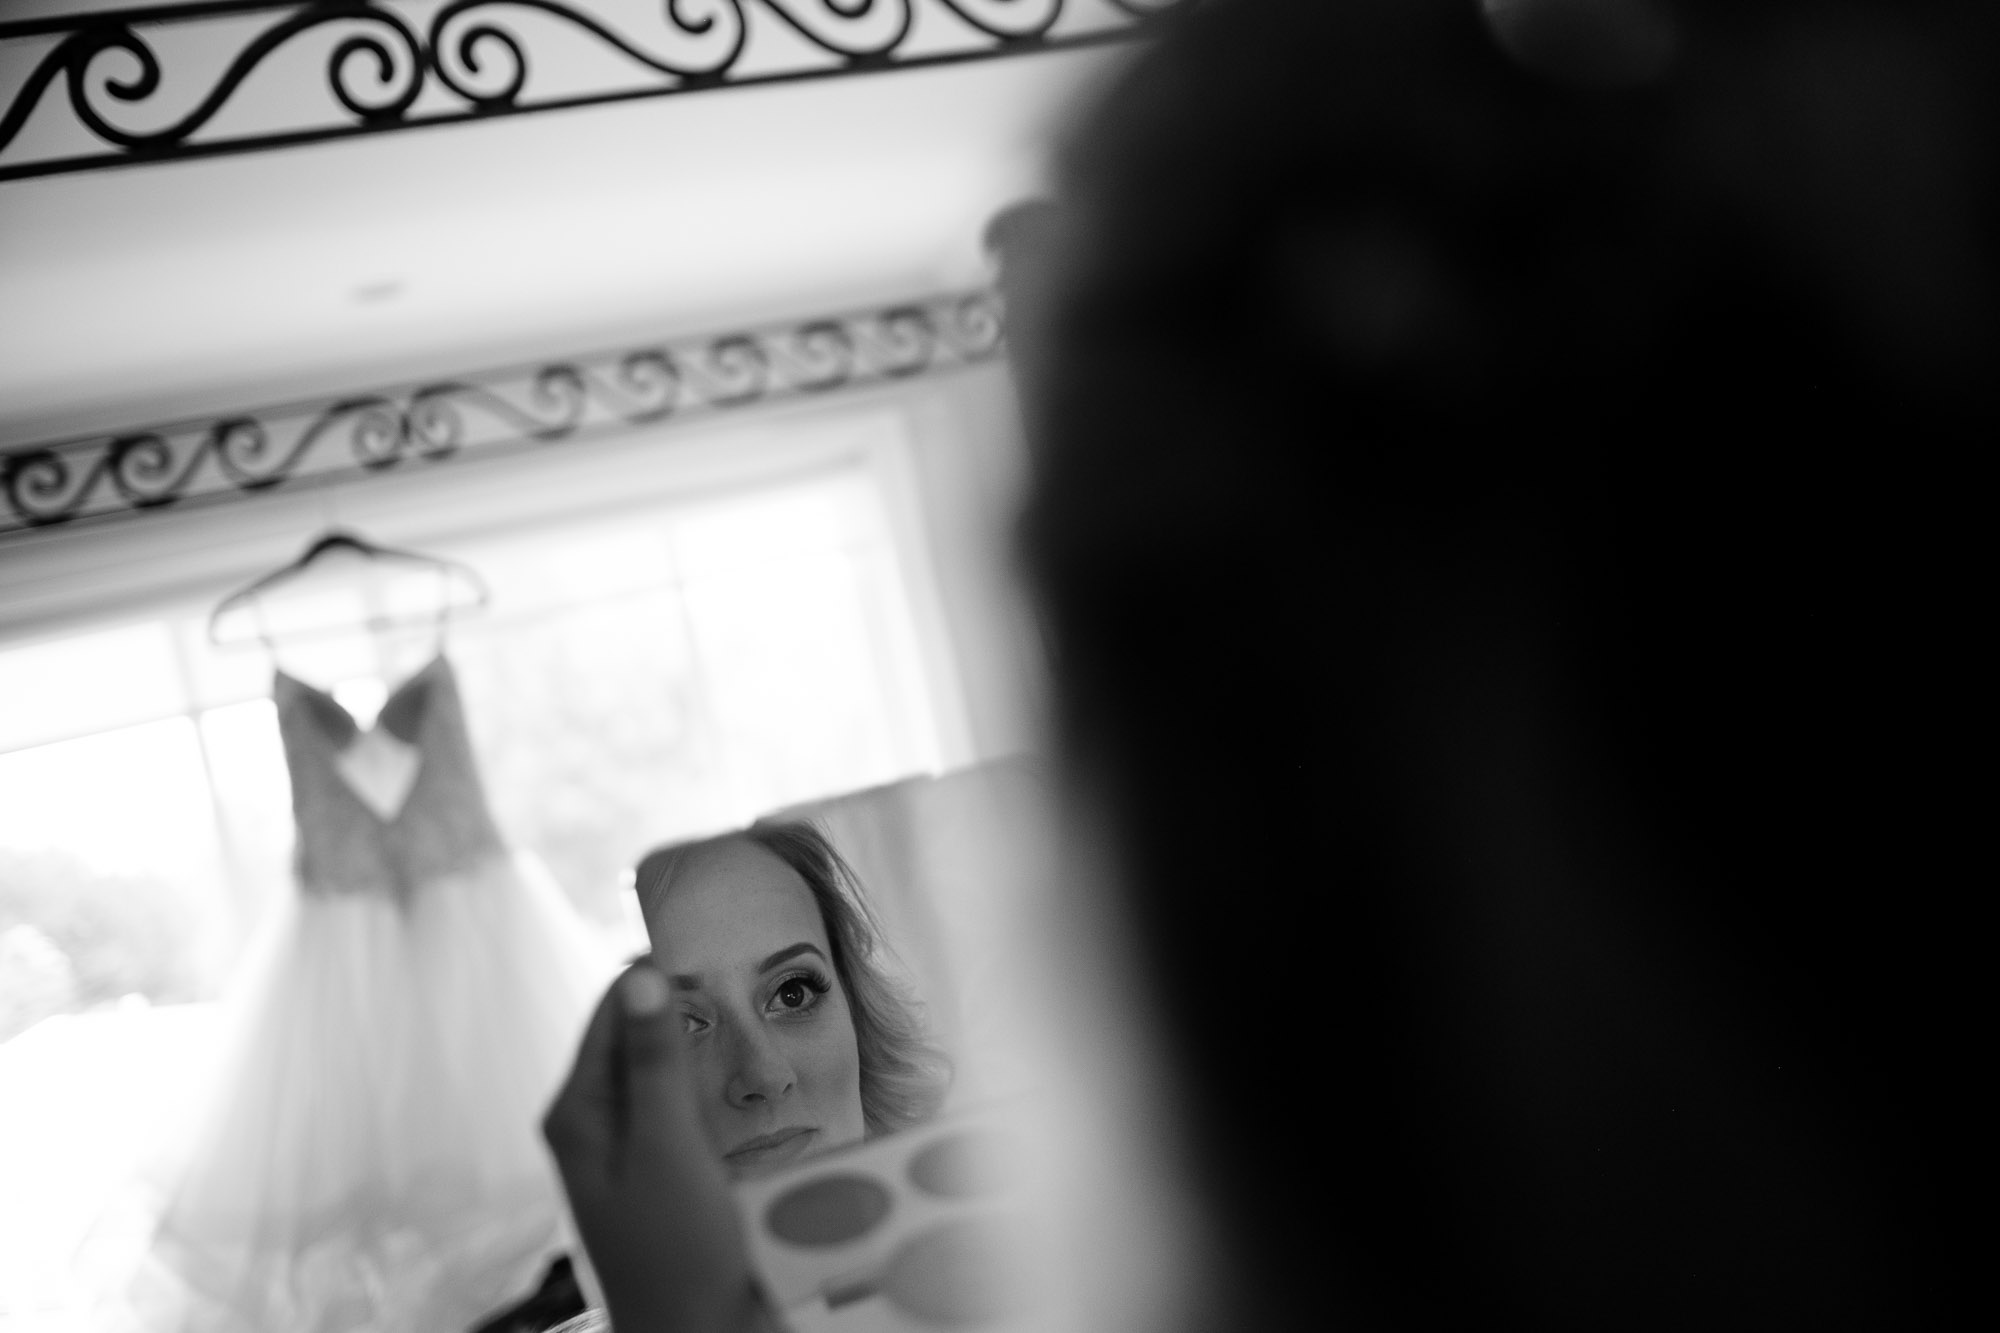 Alex checks her makeup with her wedding dress in the background in this candid black and white wedding photograph.